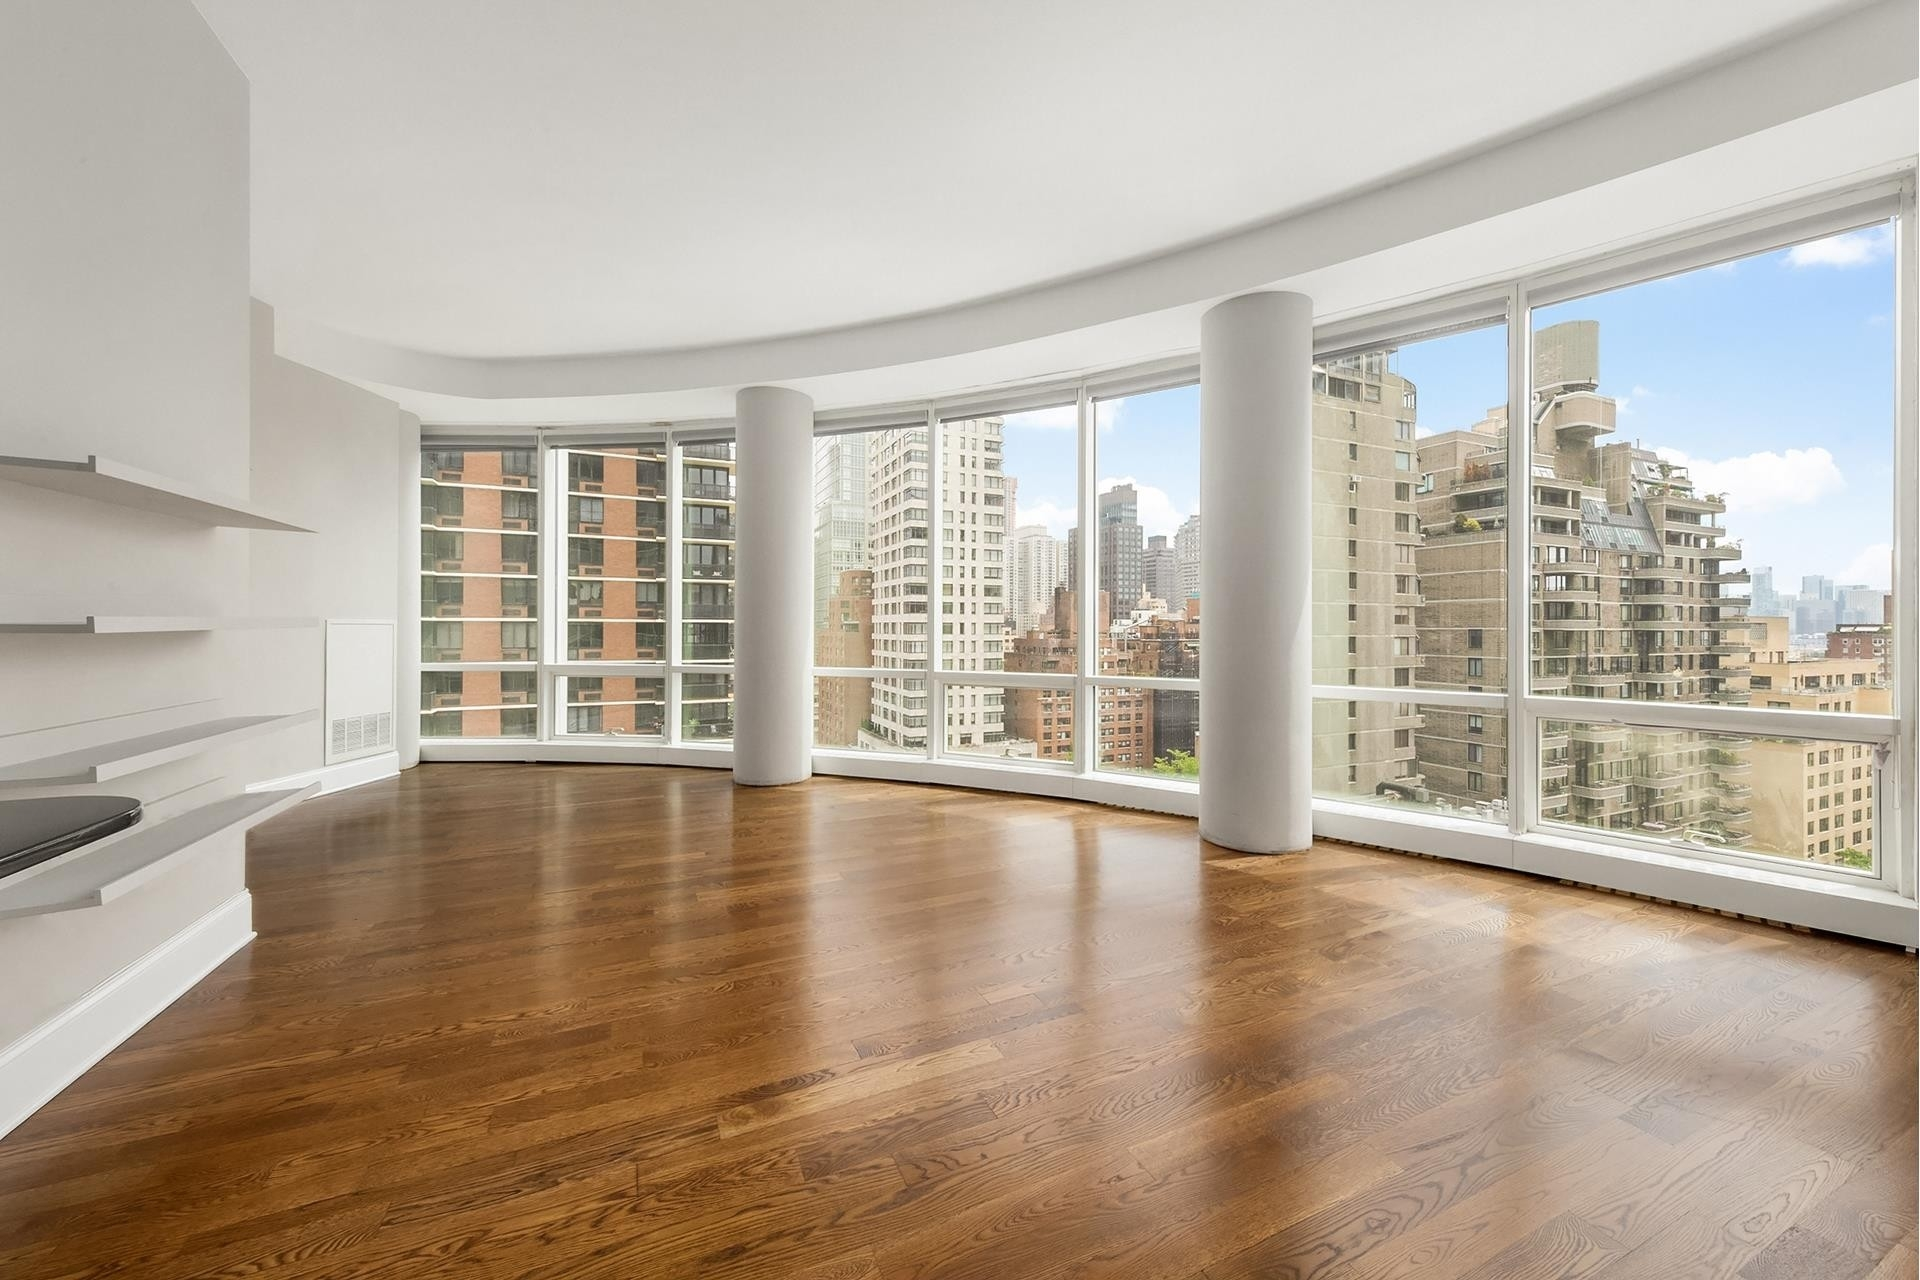 Condominium at The Alexander, 250 East 49th St, 11CD Turtle Bay, New York